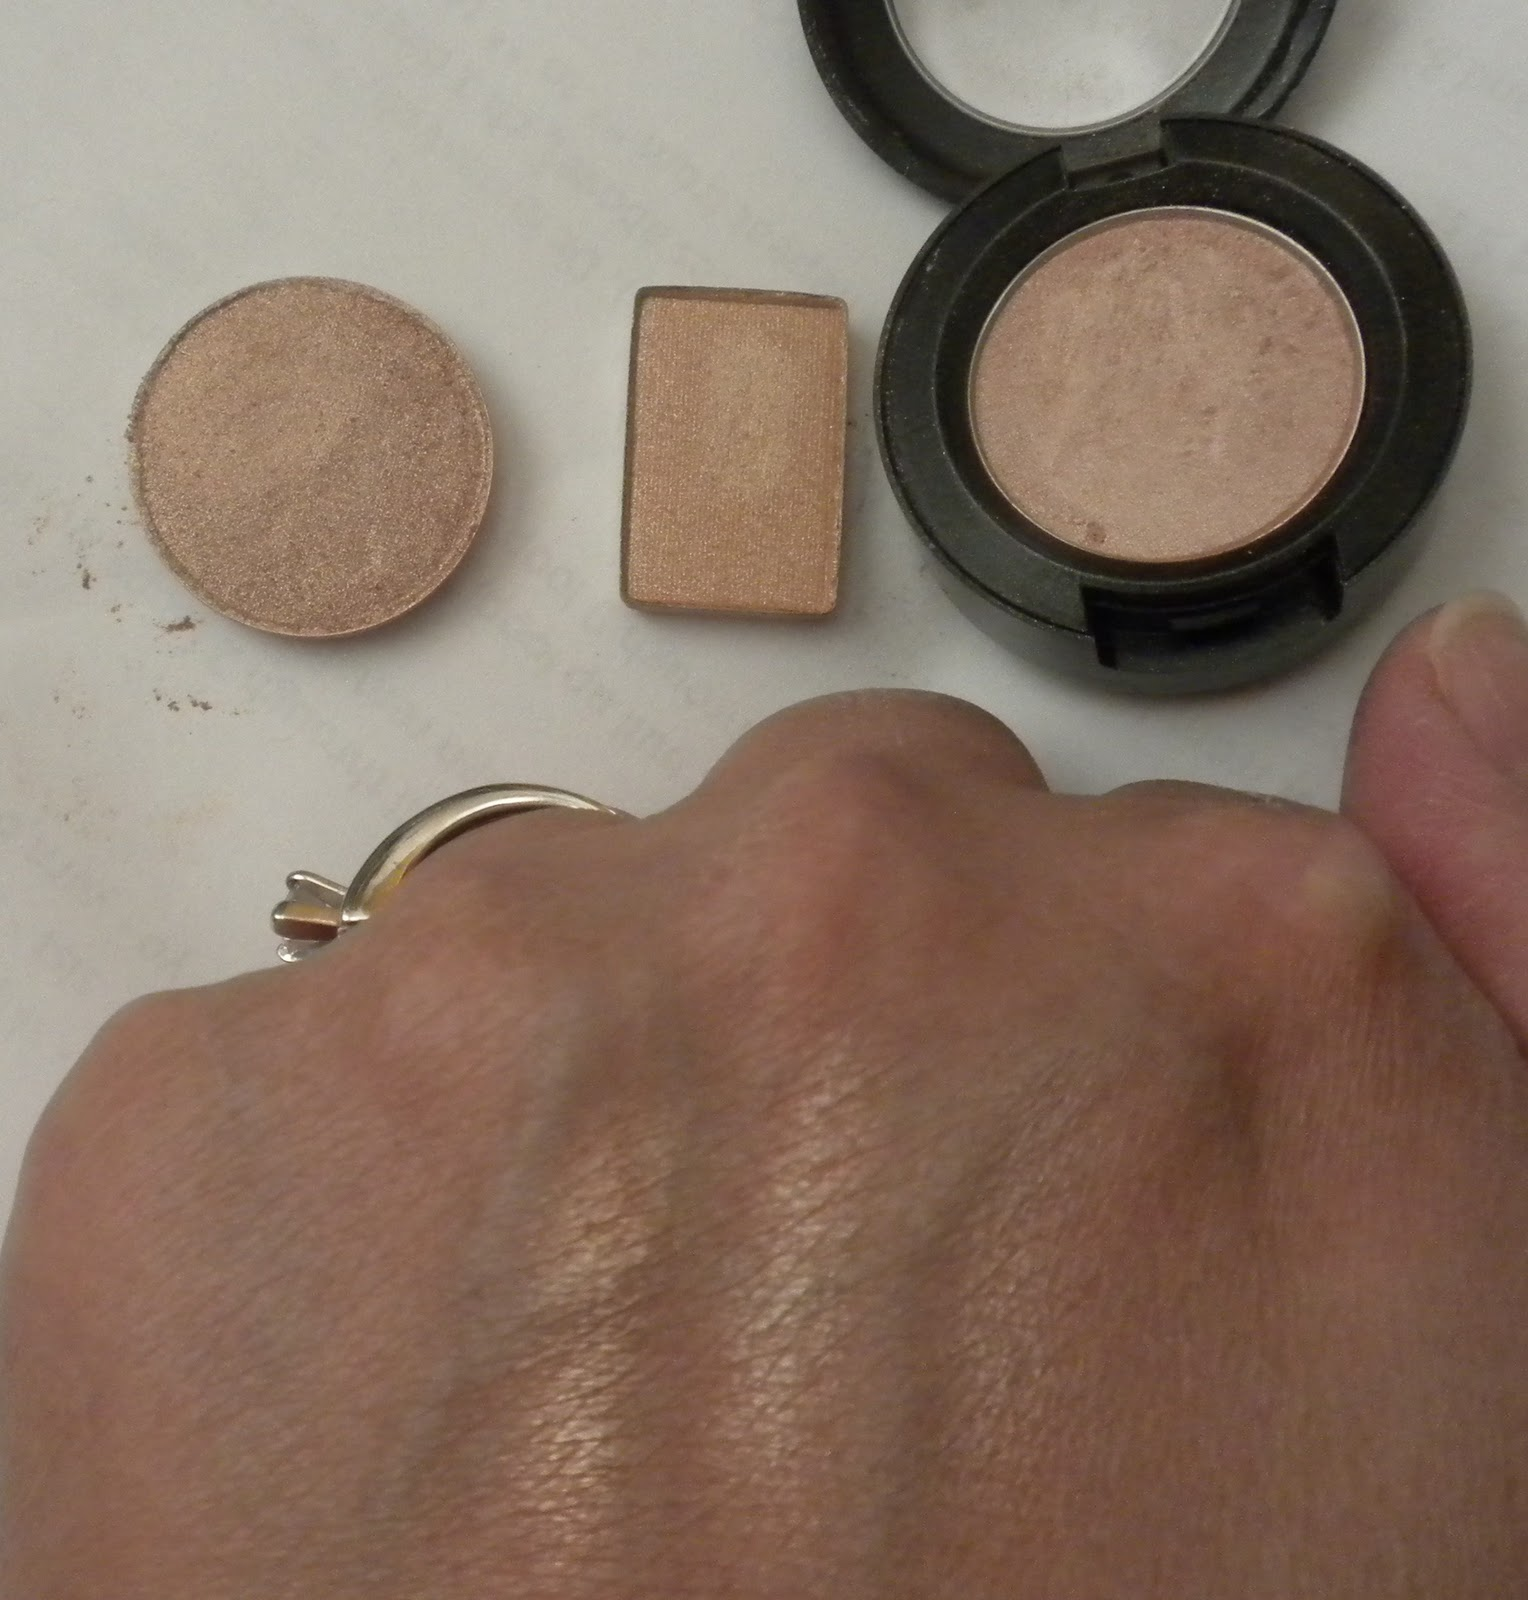 Sleek Makeup Versus Marykay And Mac - Fashion (2) - Nairaland